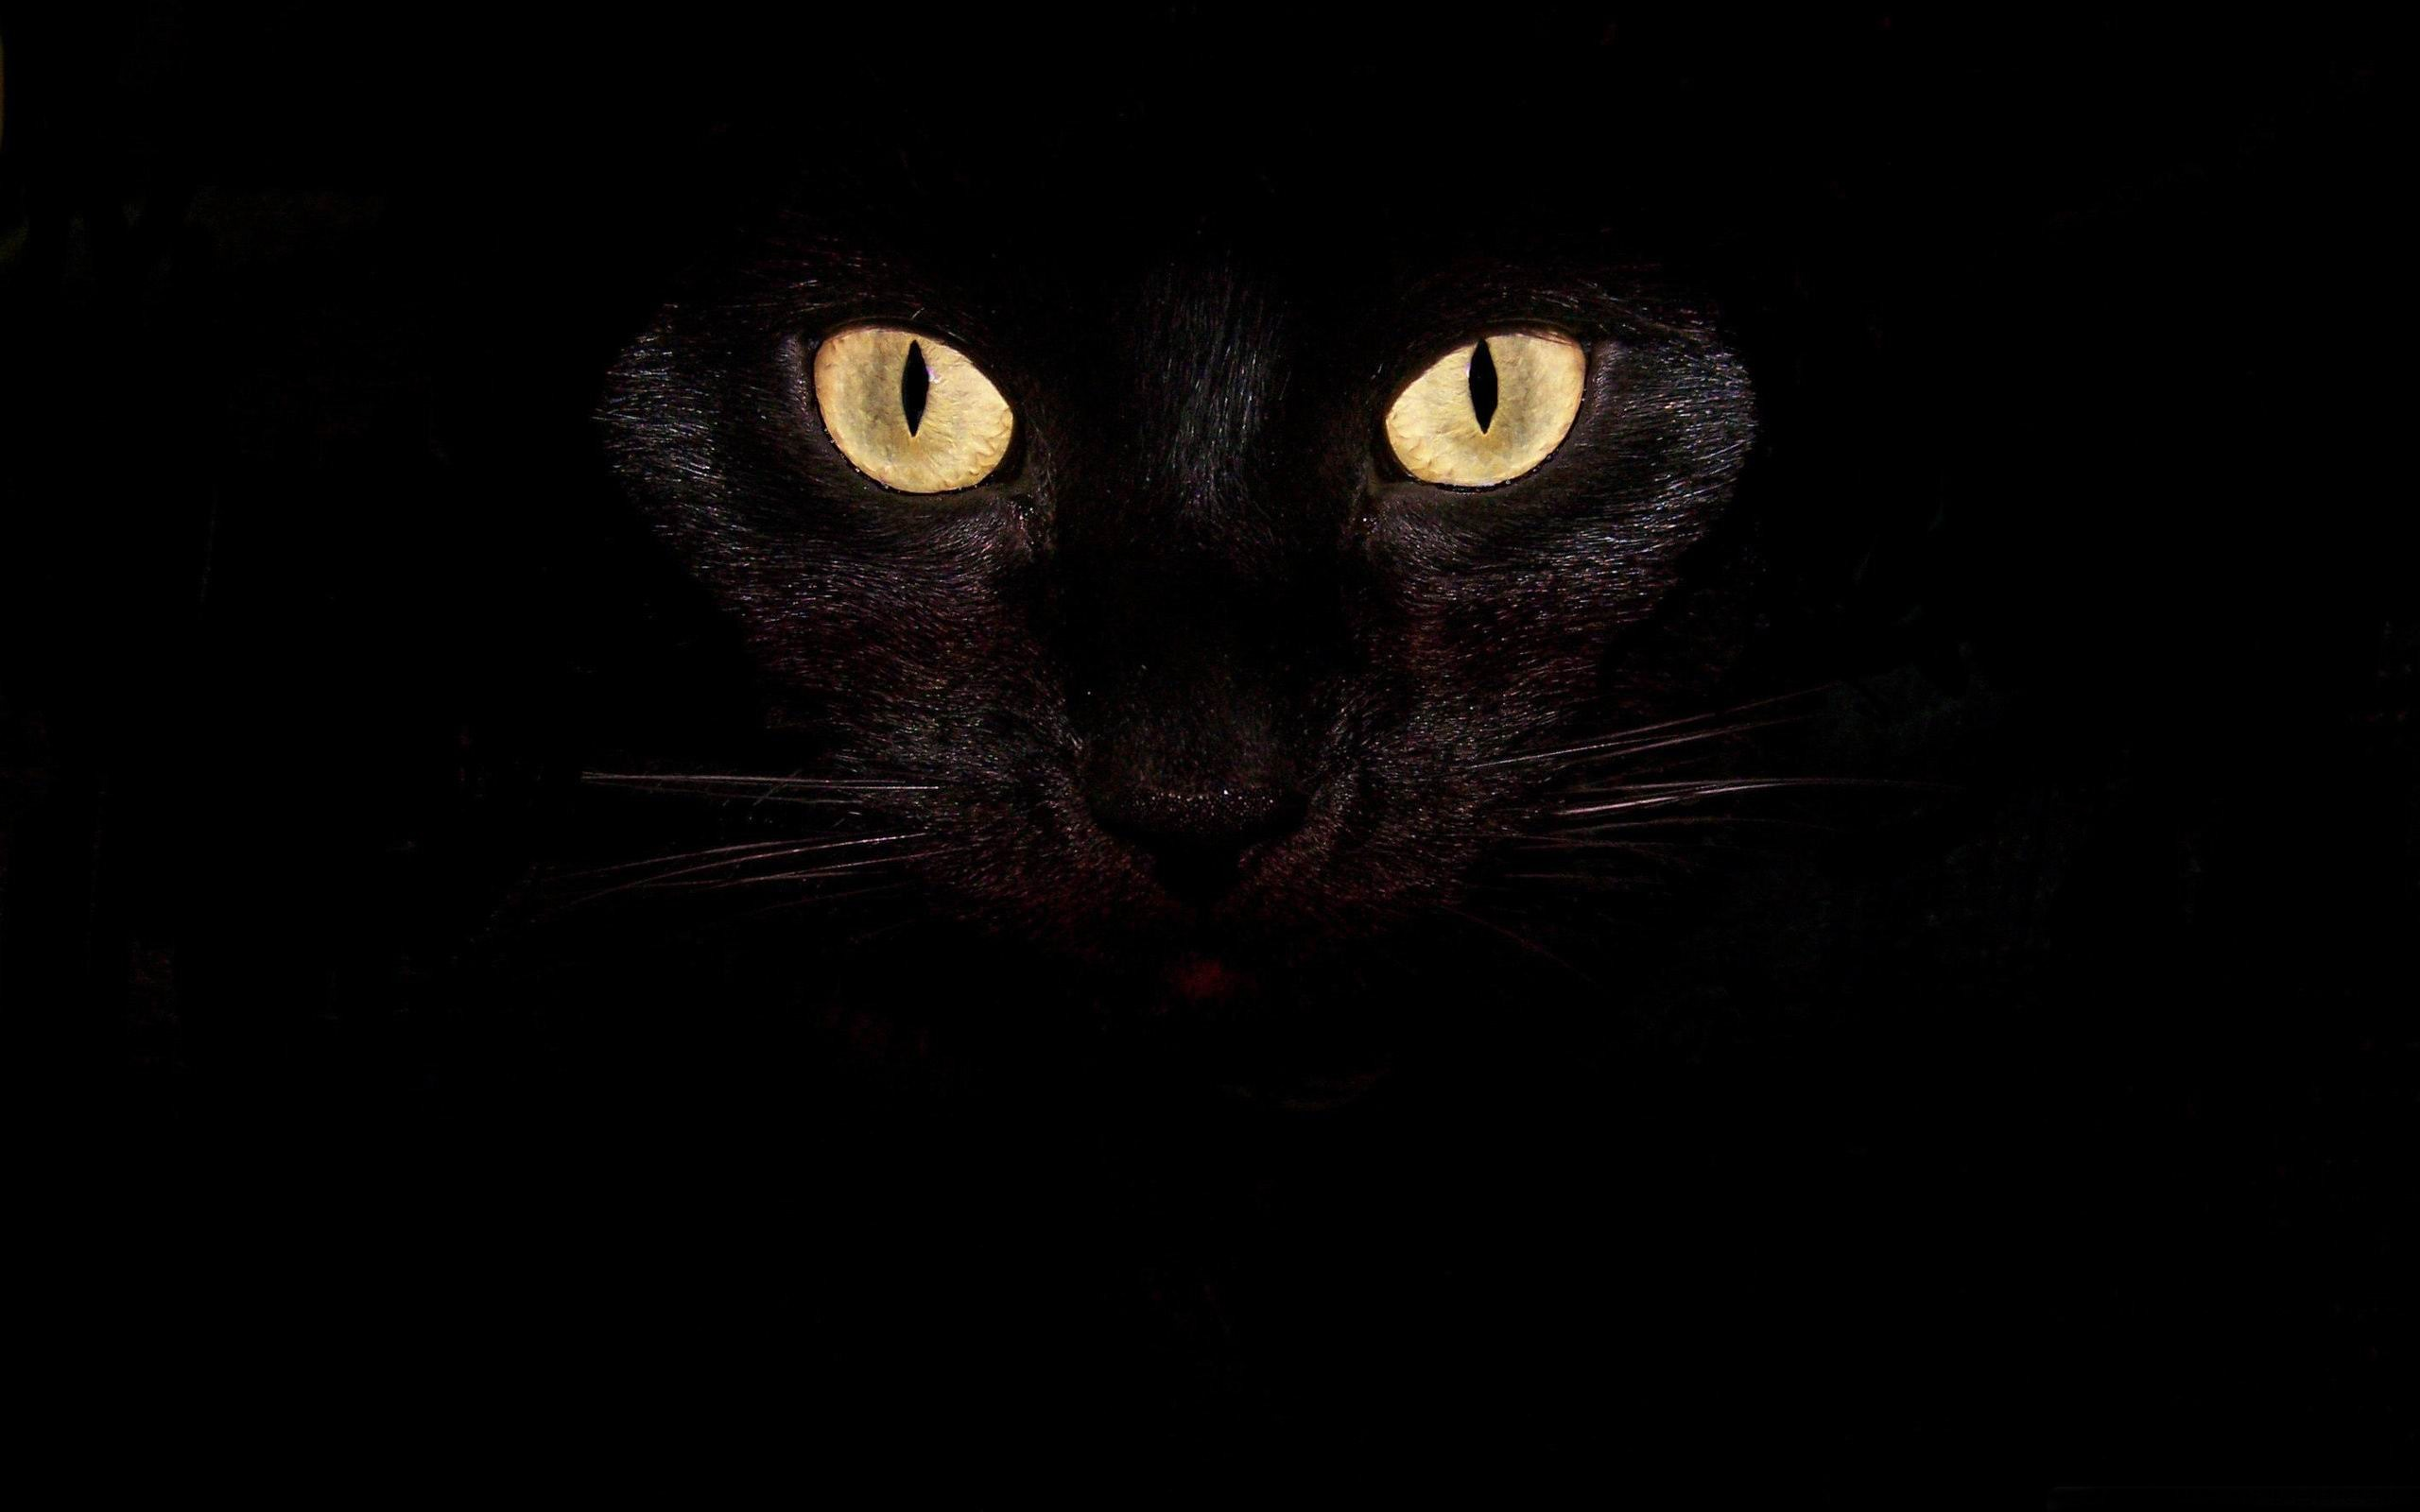 Black Cat Eyes Wallpaper: Black Cat Eyes-Cute Pet Cat Desktop Pictures-2560x1600